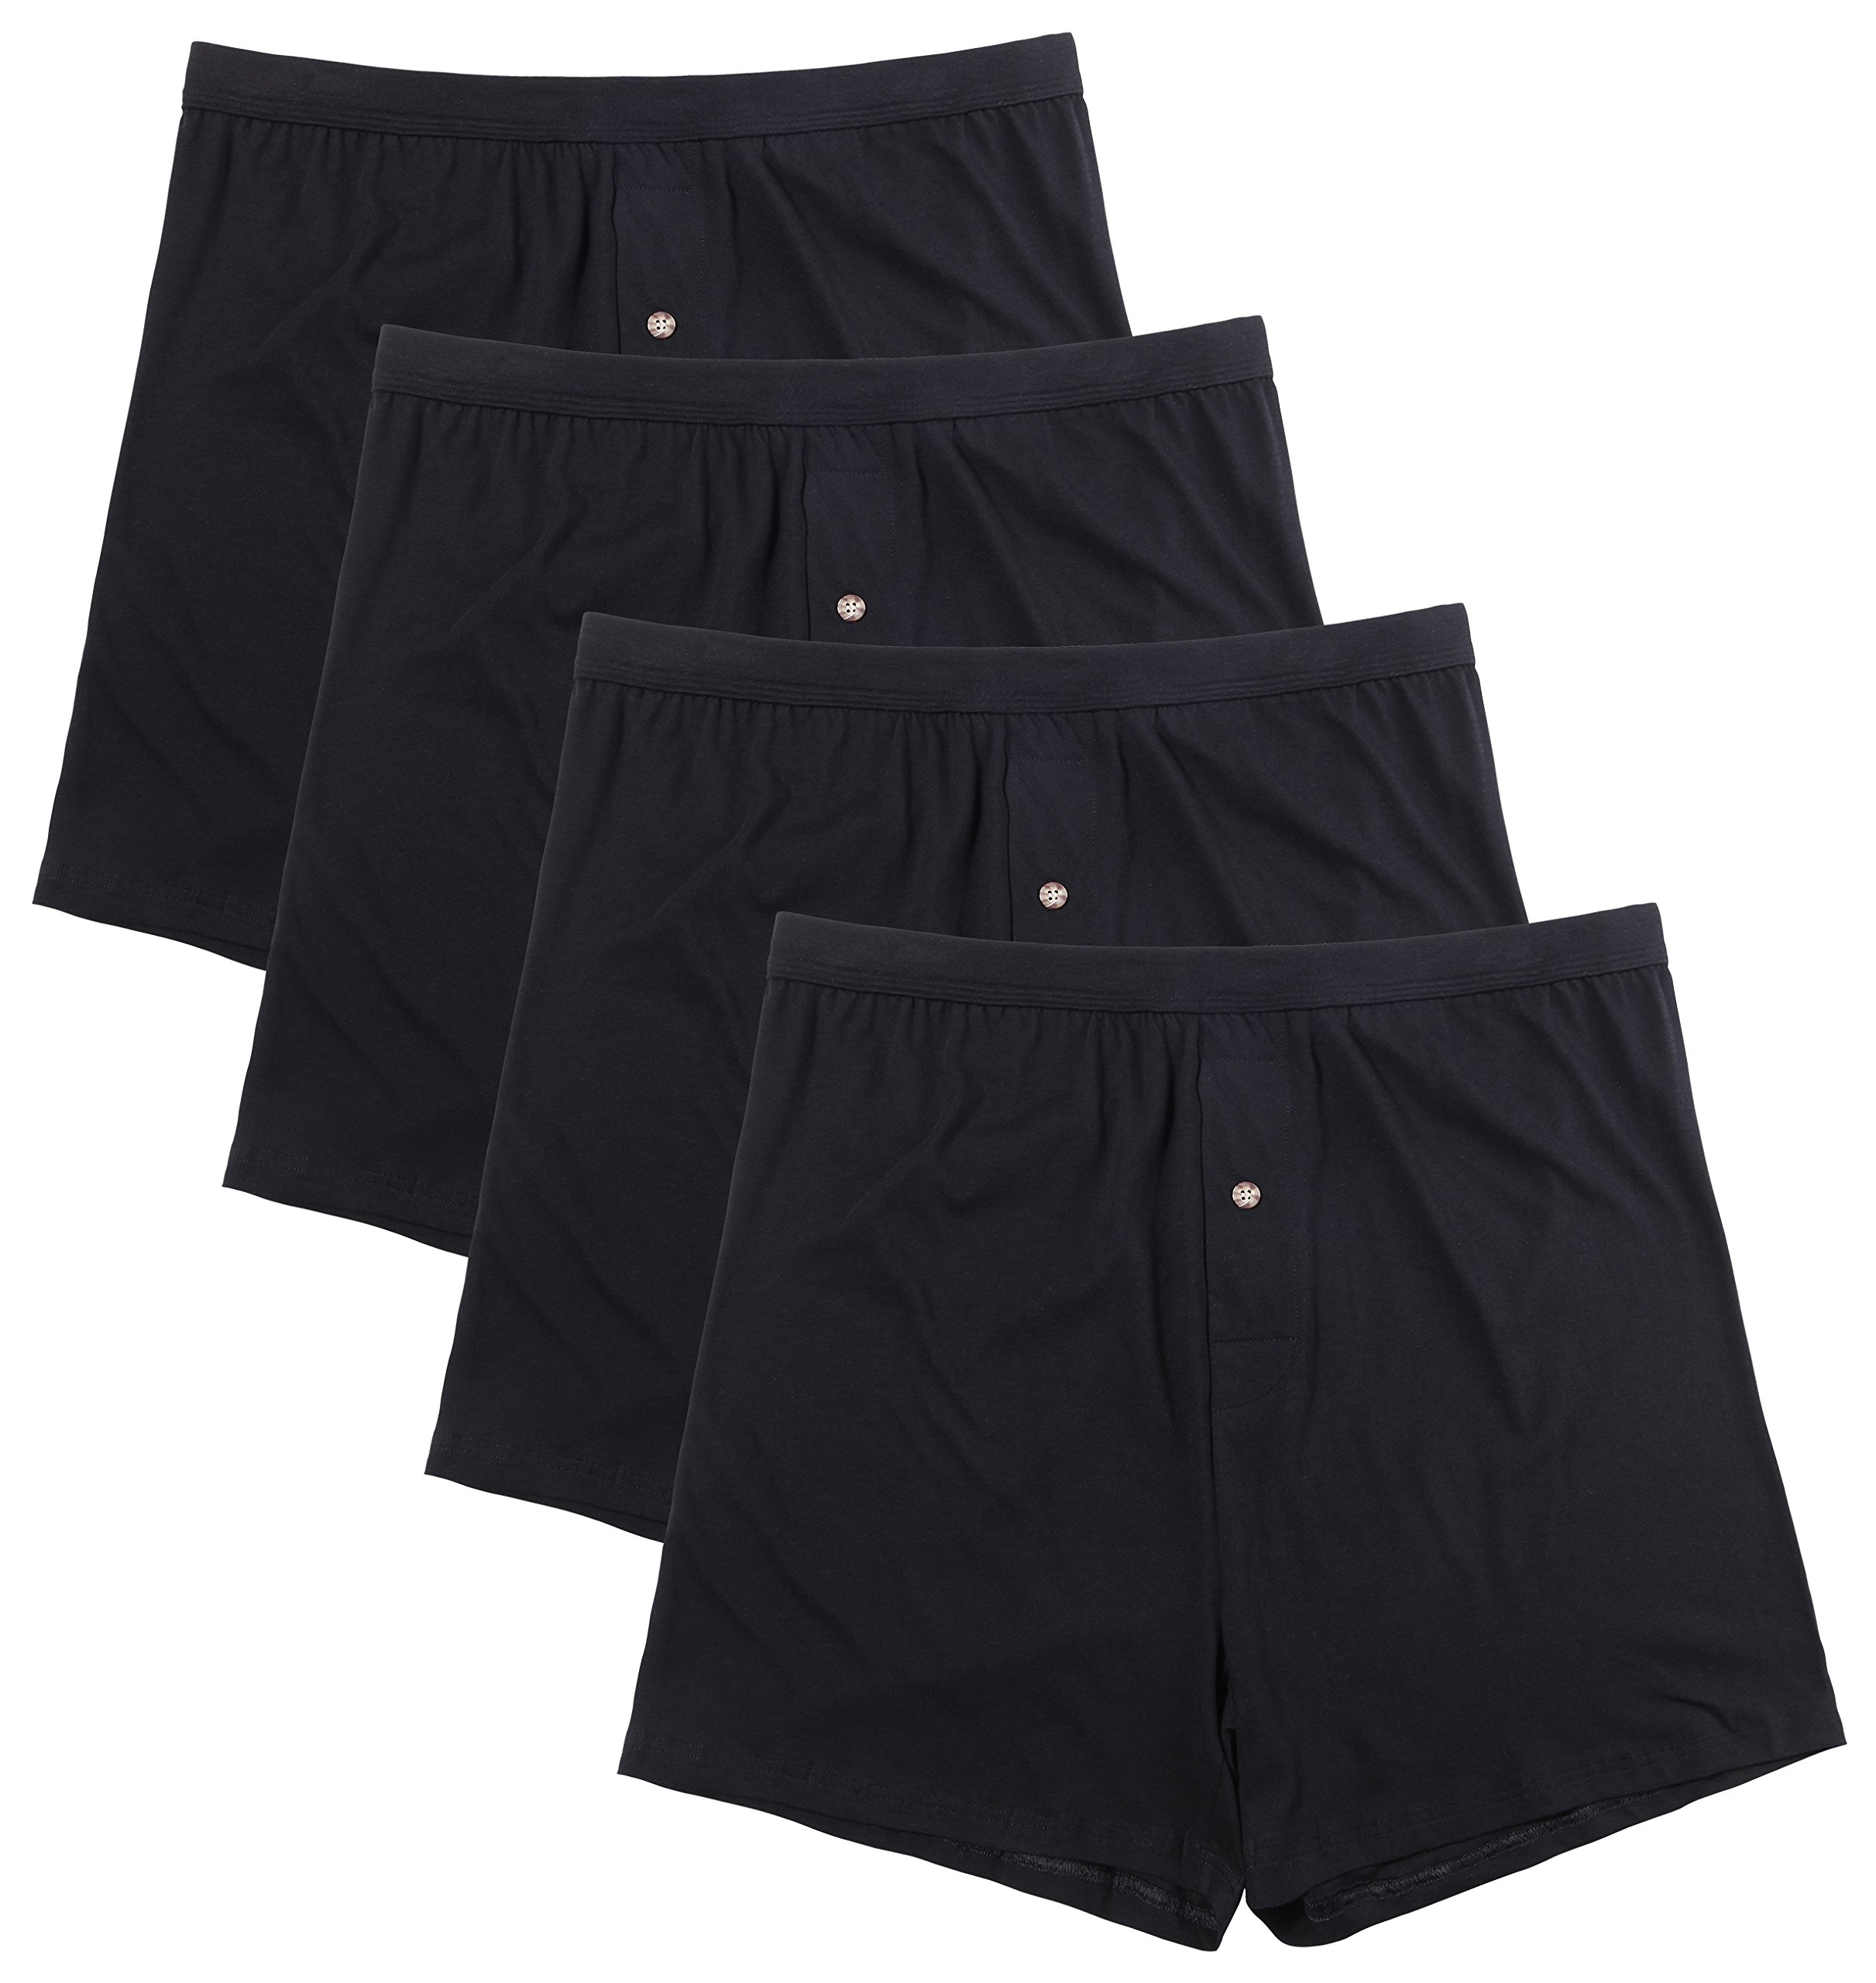 Innersy Men's 4 Pack Ultimate Soft Stretchy All Cotton Knit Boxers (XL, 4 Black)